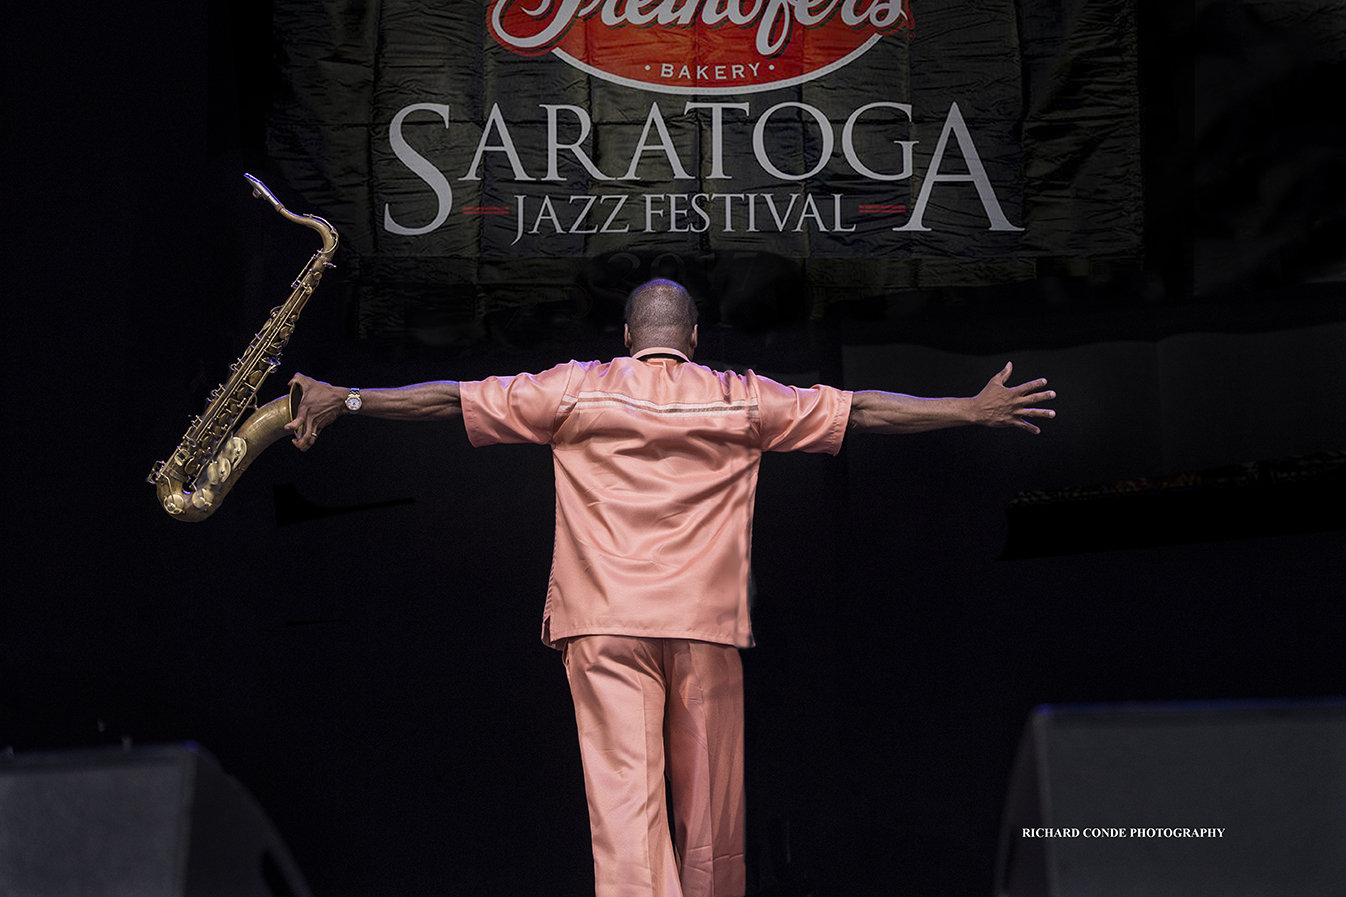 James Carter at the Saratoga Jazz Festival